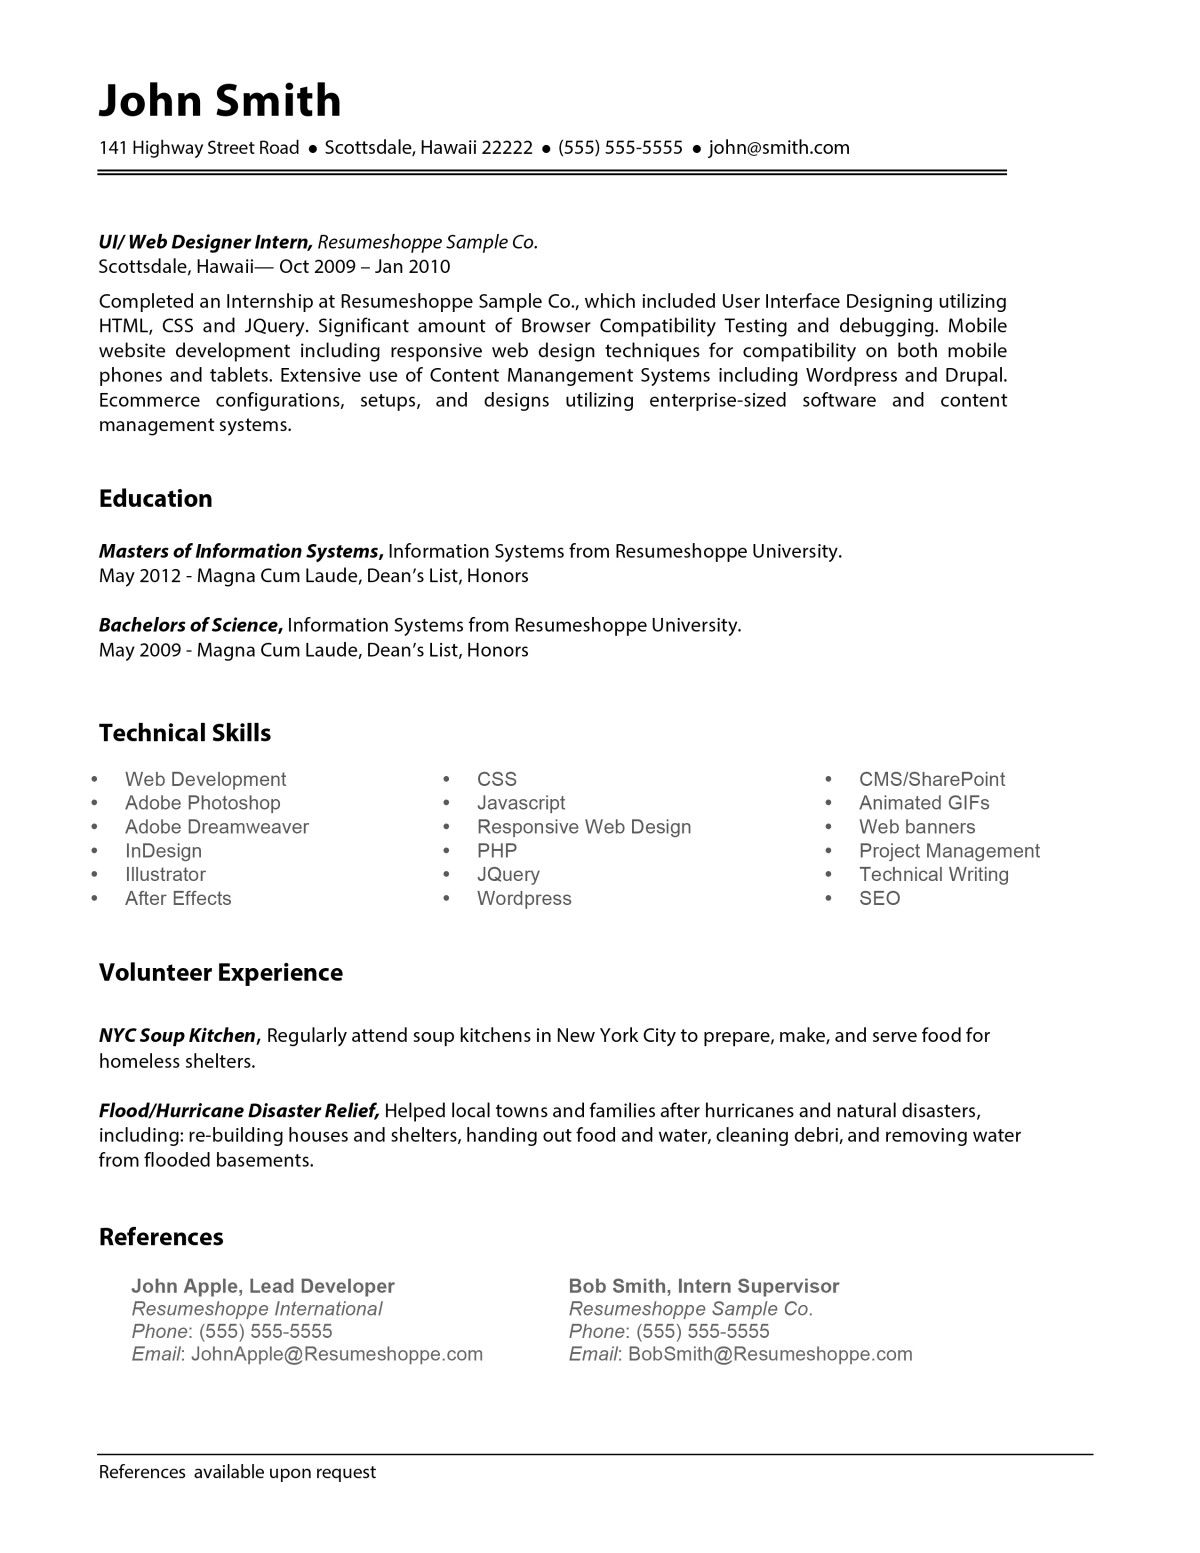 The John Resume   Resume Shop    Professional Resume